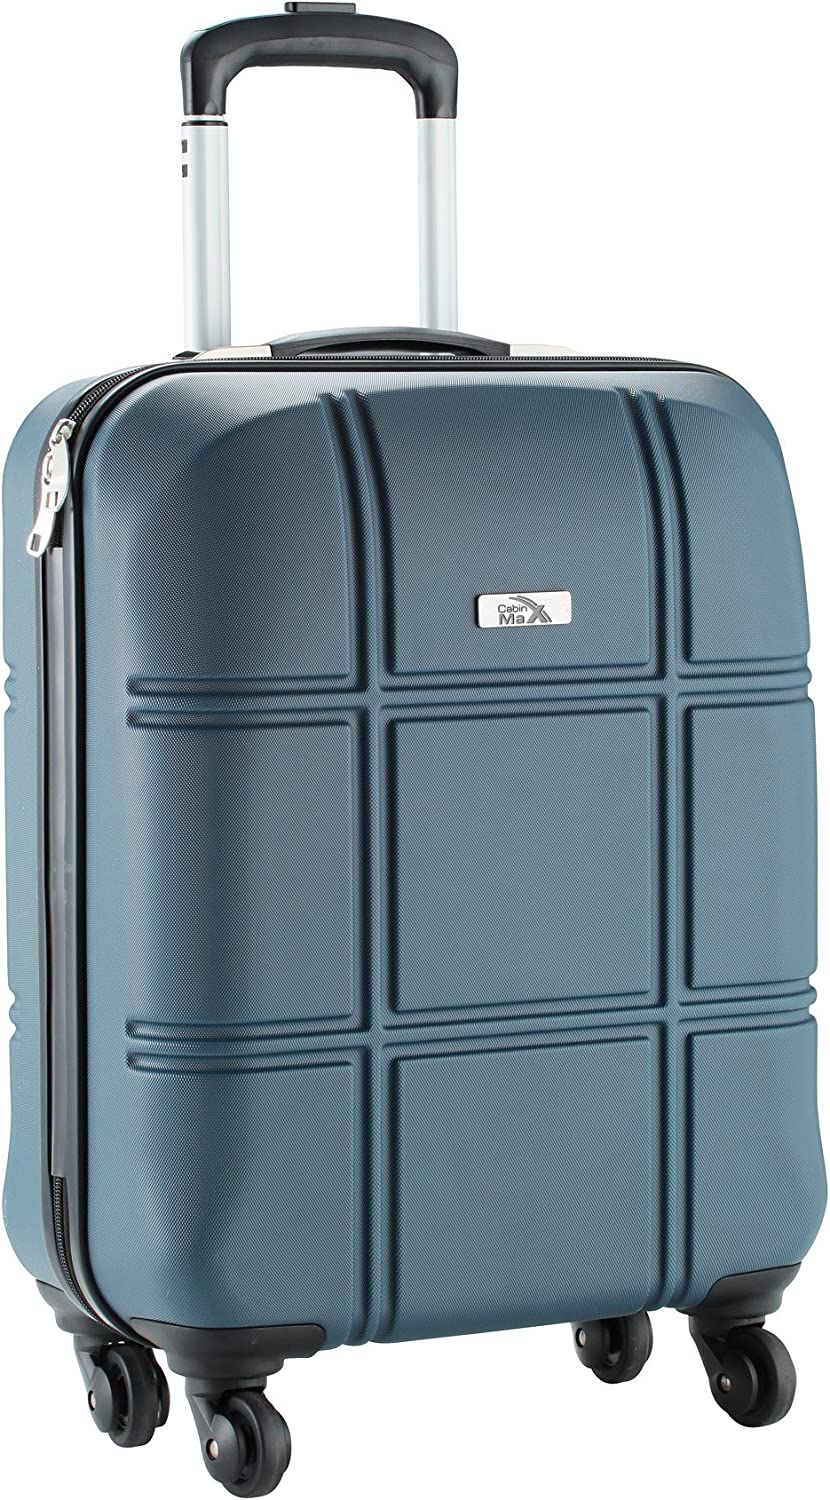 Cabin Max Hard Shell Carry On Case